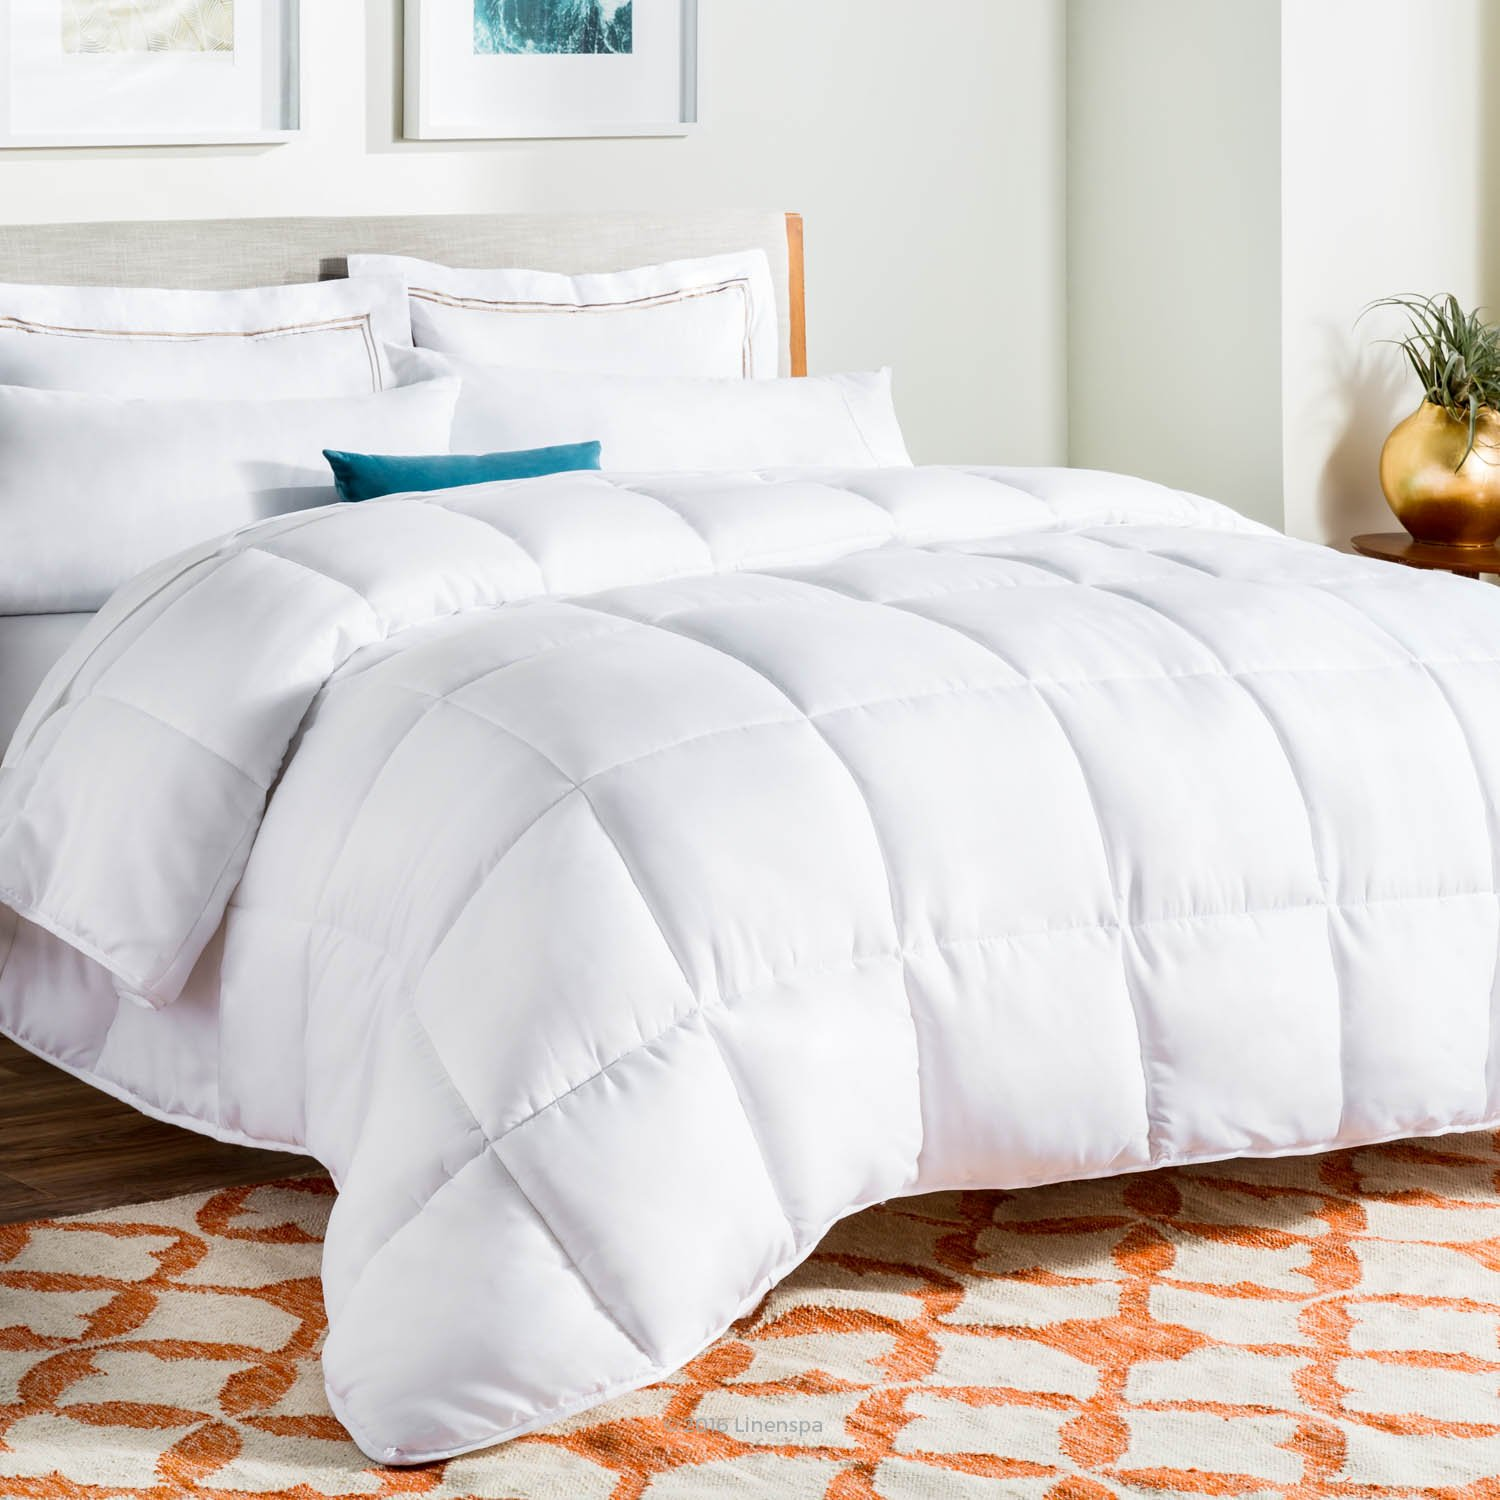 comforter down options colored ideal king size alternative